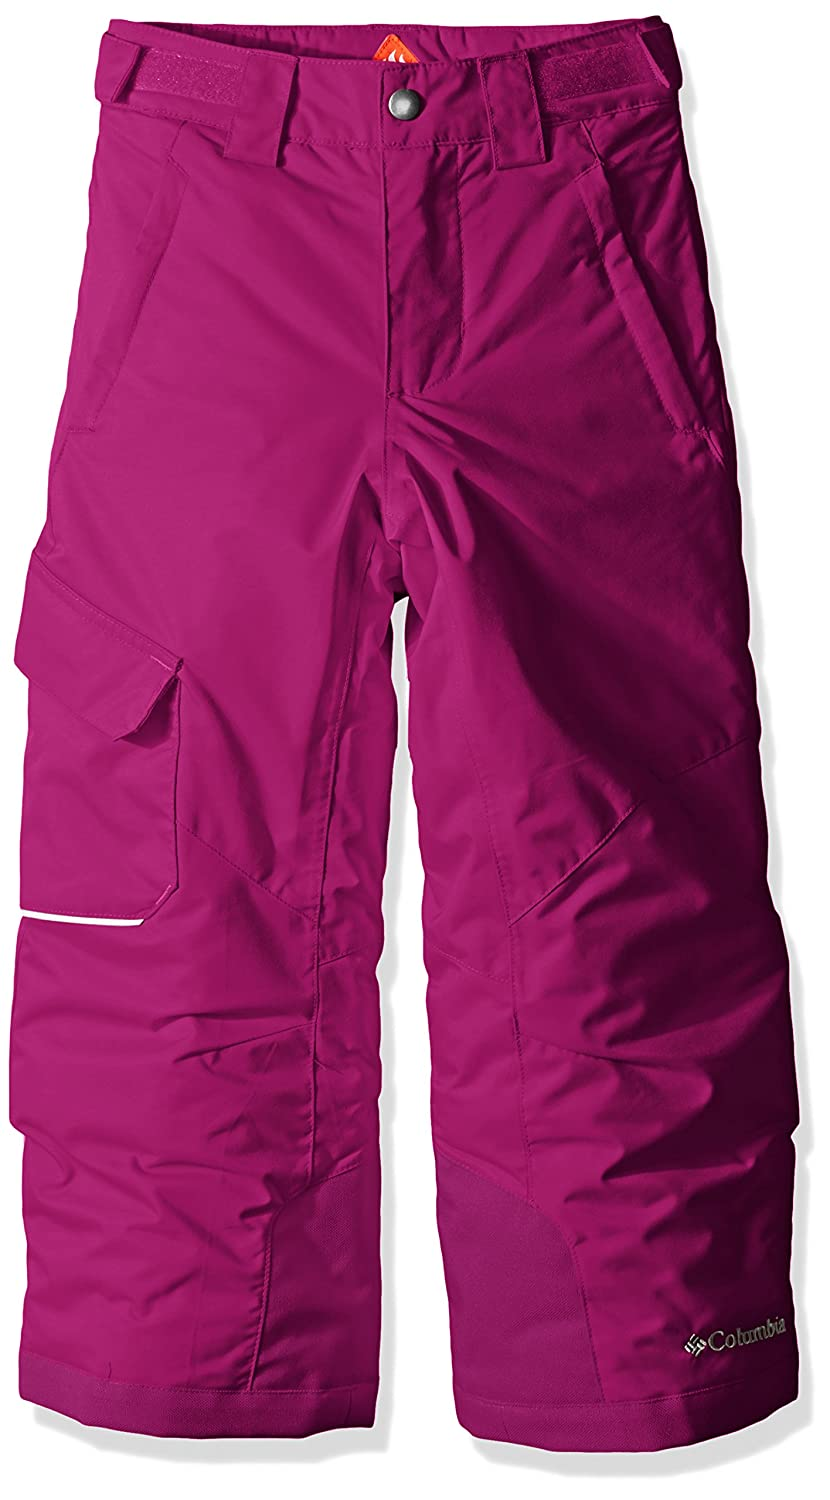 Columbia Bugaboo Pants Columbia (Sporting Goods)